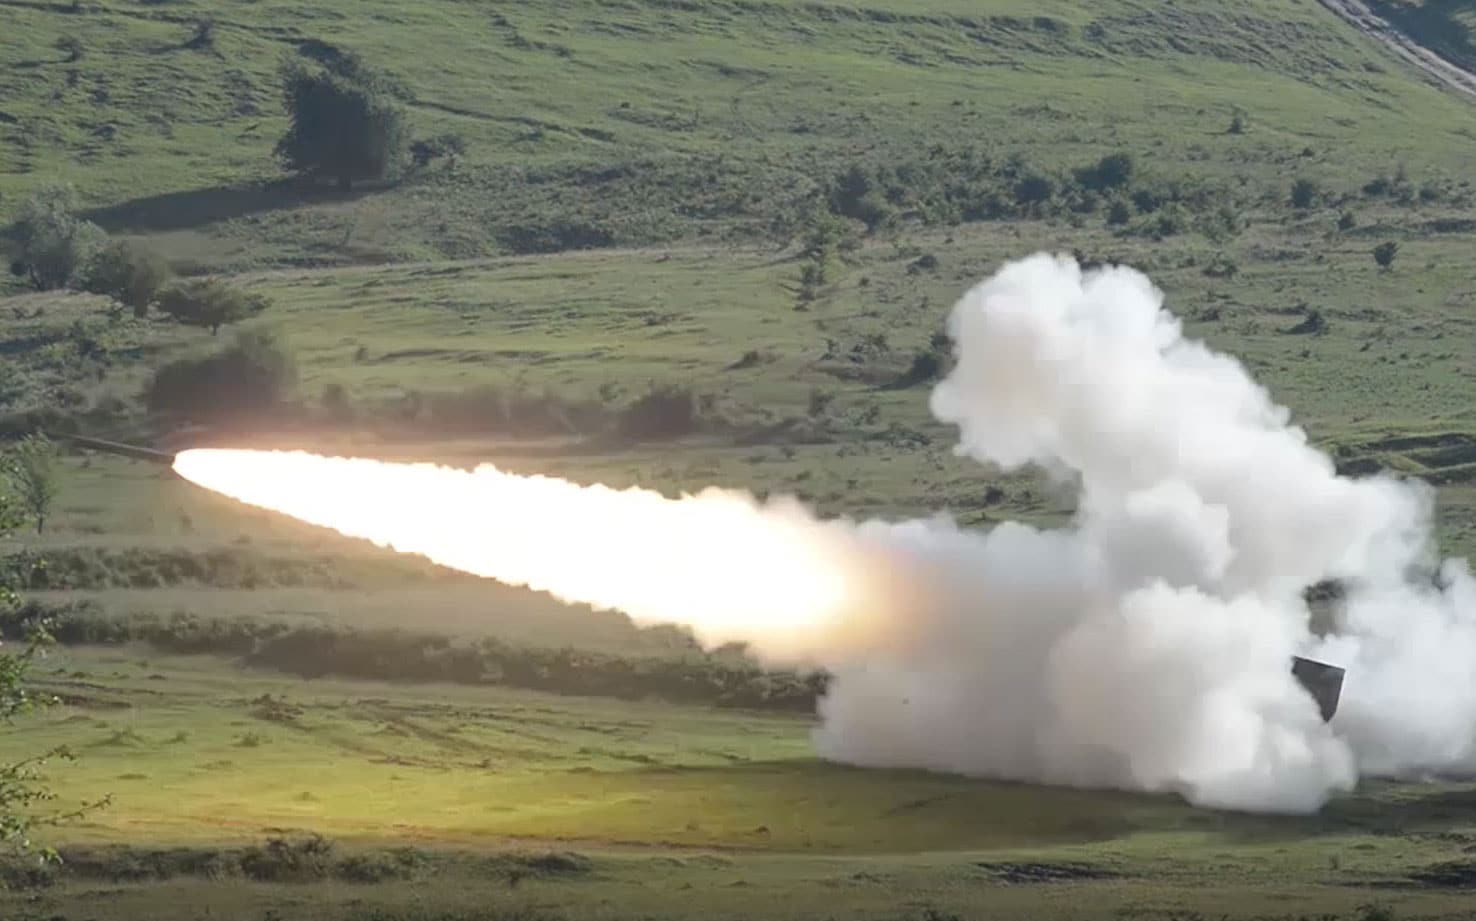 5th Battalion, 113th Field Artillery Regiment, North Carolina National Guard shoot their High Mobility Artillery Rocket Systems as part of Getica Saber.